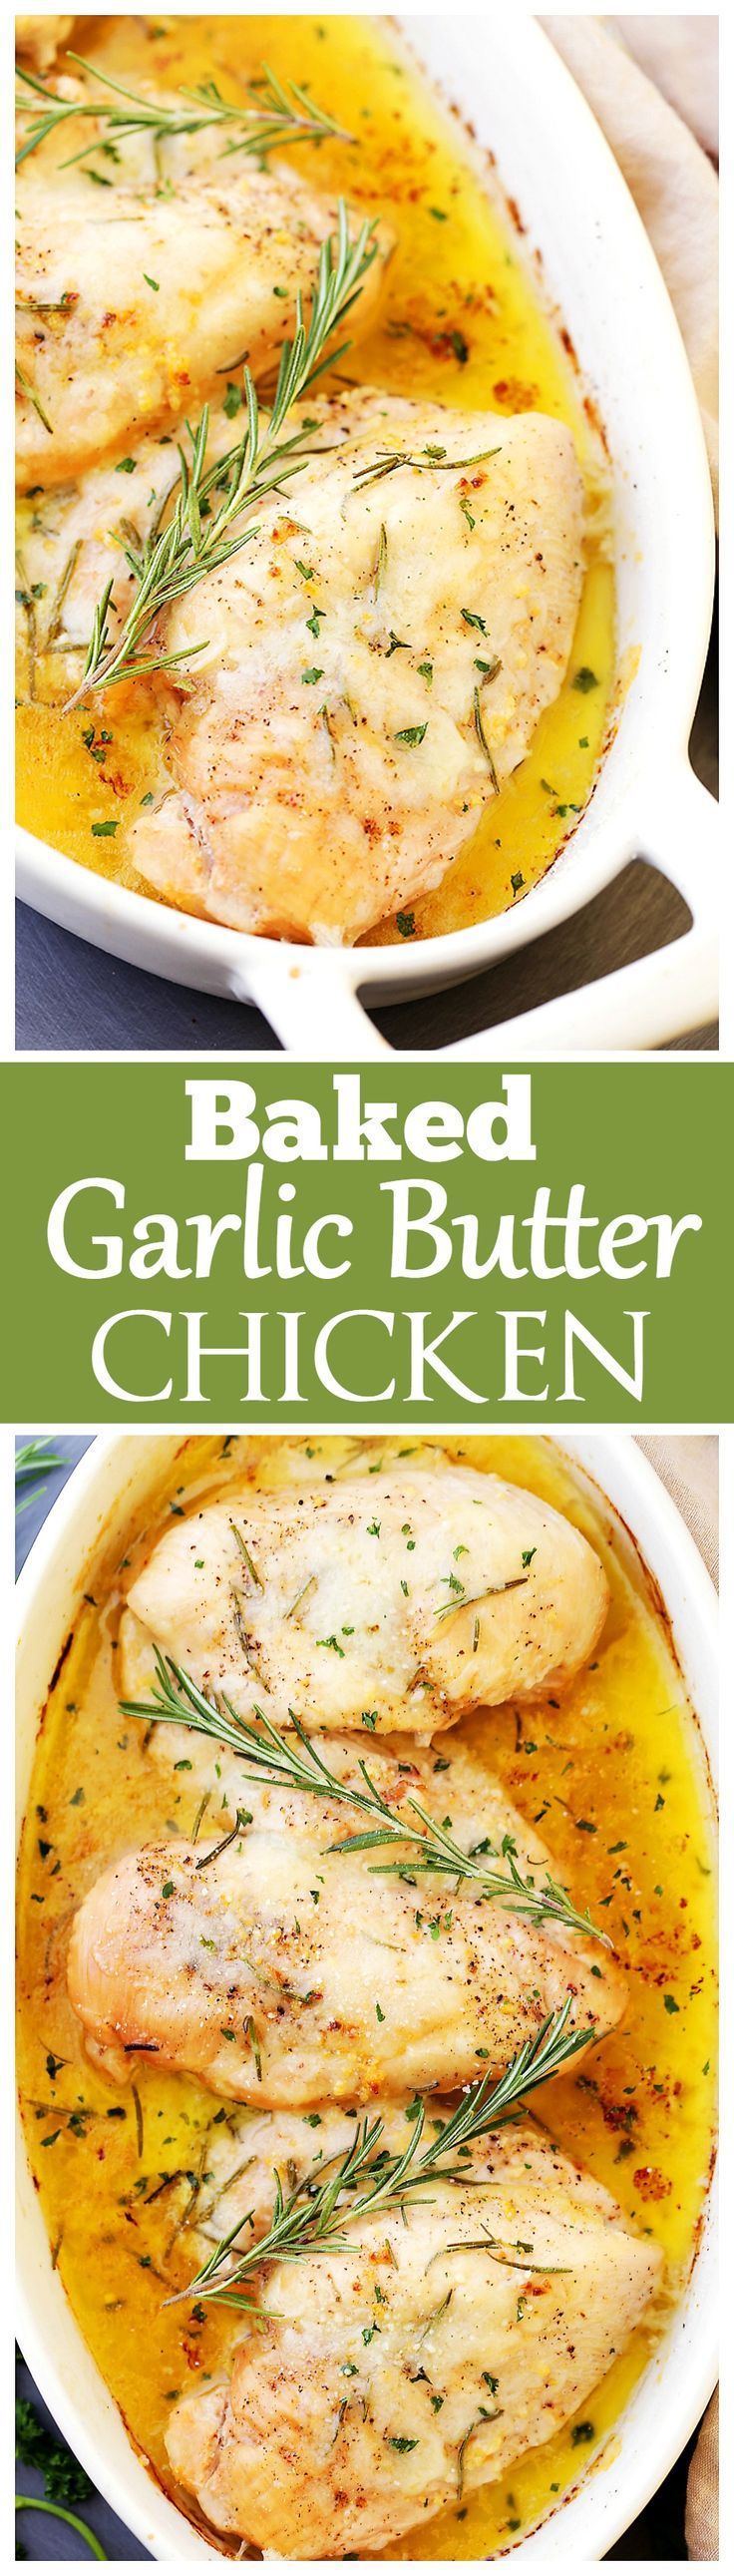 Baked Garlic Butter Chicken - Super quick, easy and SO delicious Garlic Butter Chicken with fresh rosemary and cheese. The perfect one pan dish for a weeknight!: